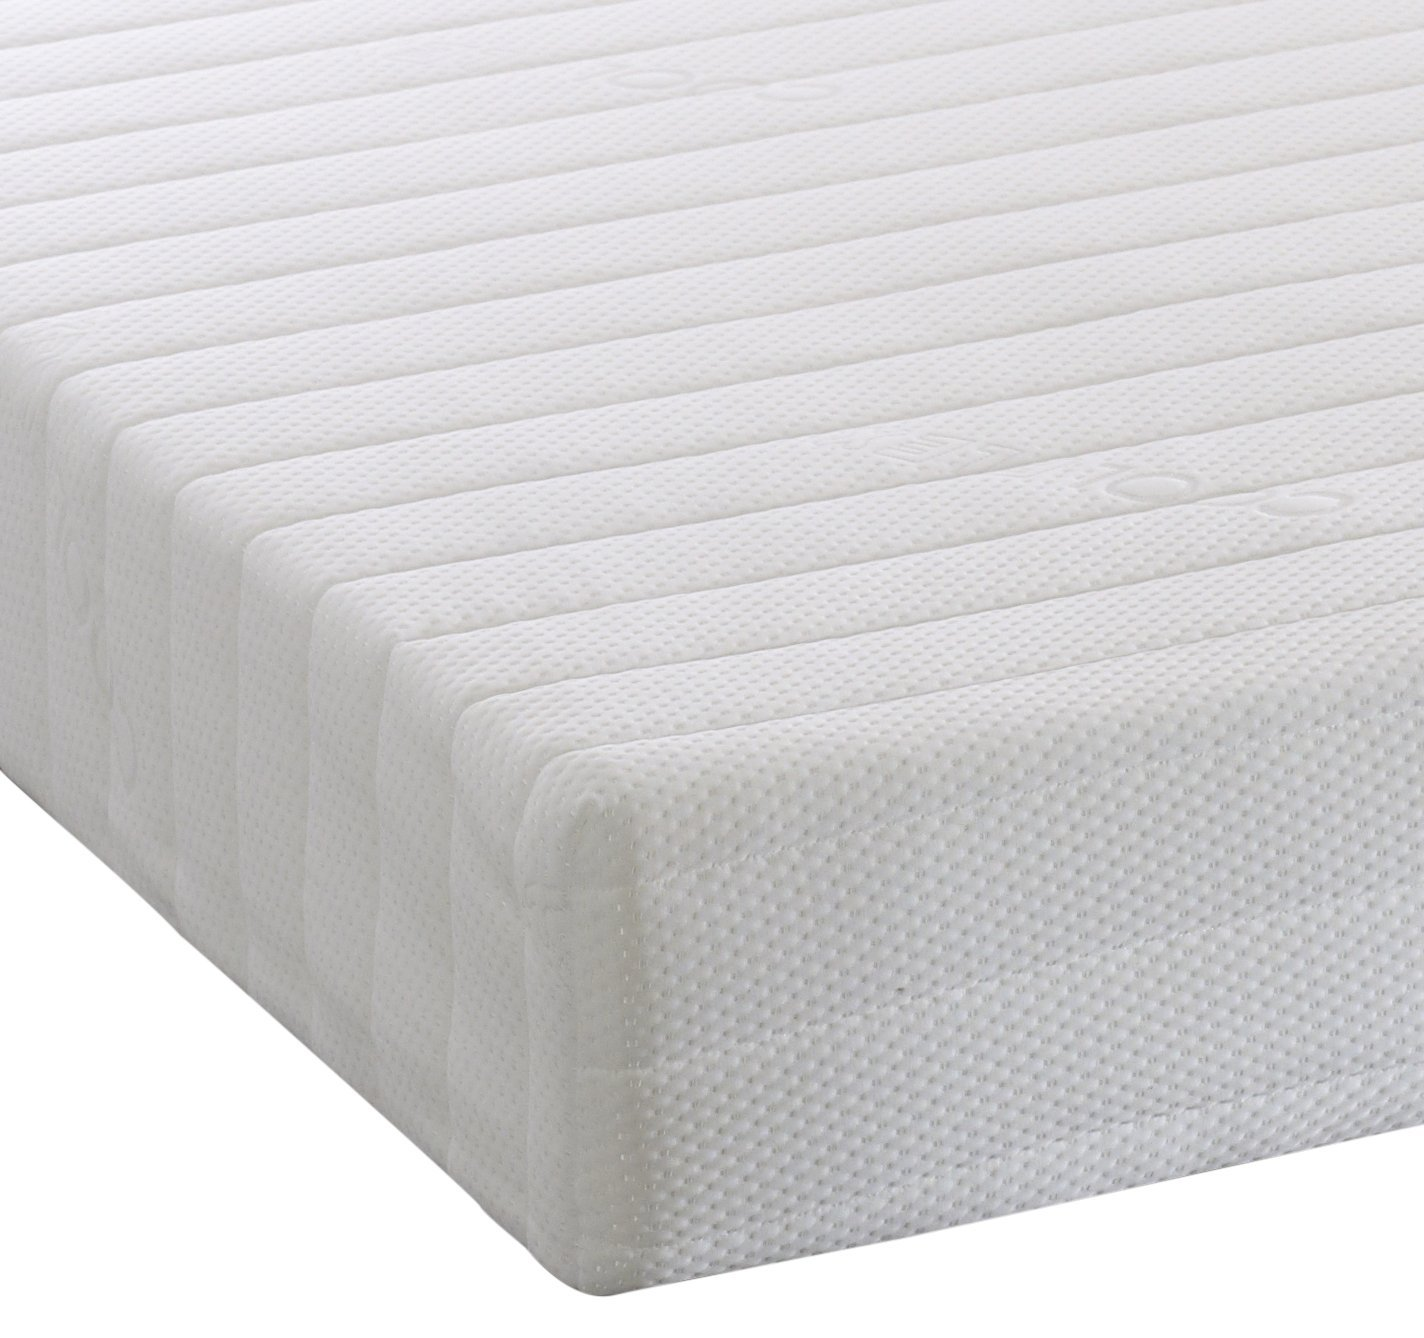 Small Single (75 x 190 cm) Visco Therapy Memory Foam and Reflex 5 Zone Rolled Mattress with Quilted Cover and Pillows - Small Double